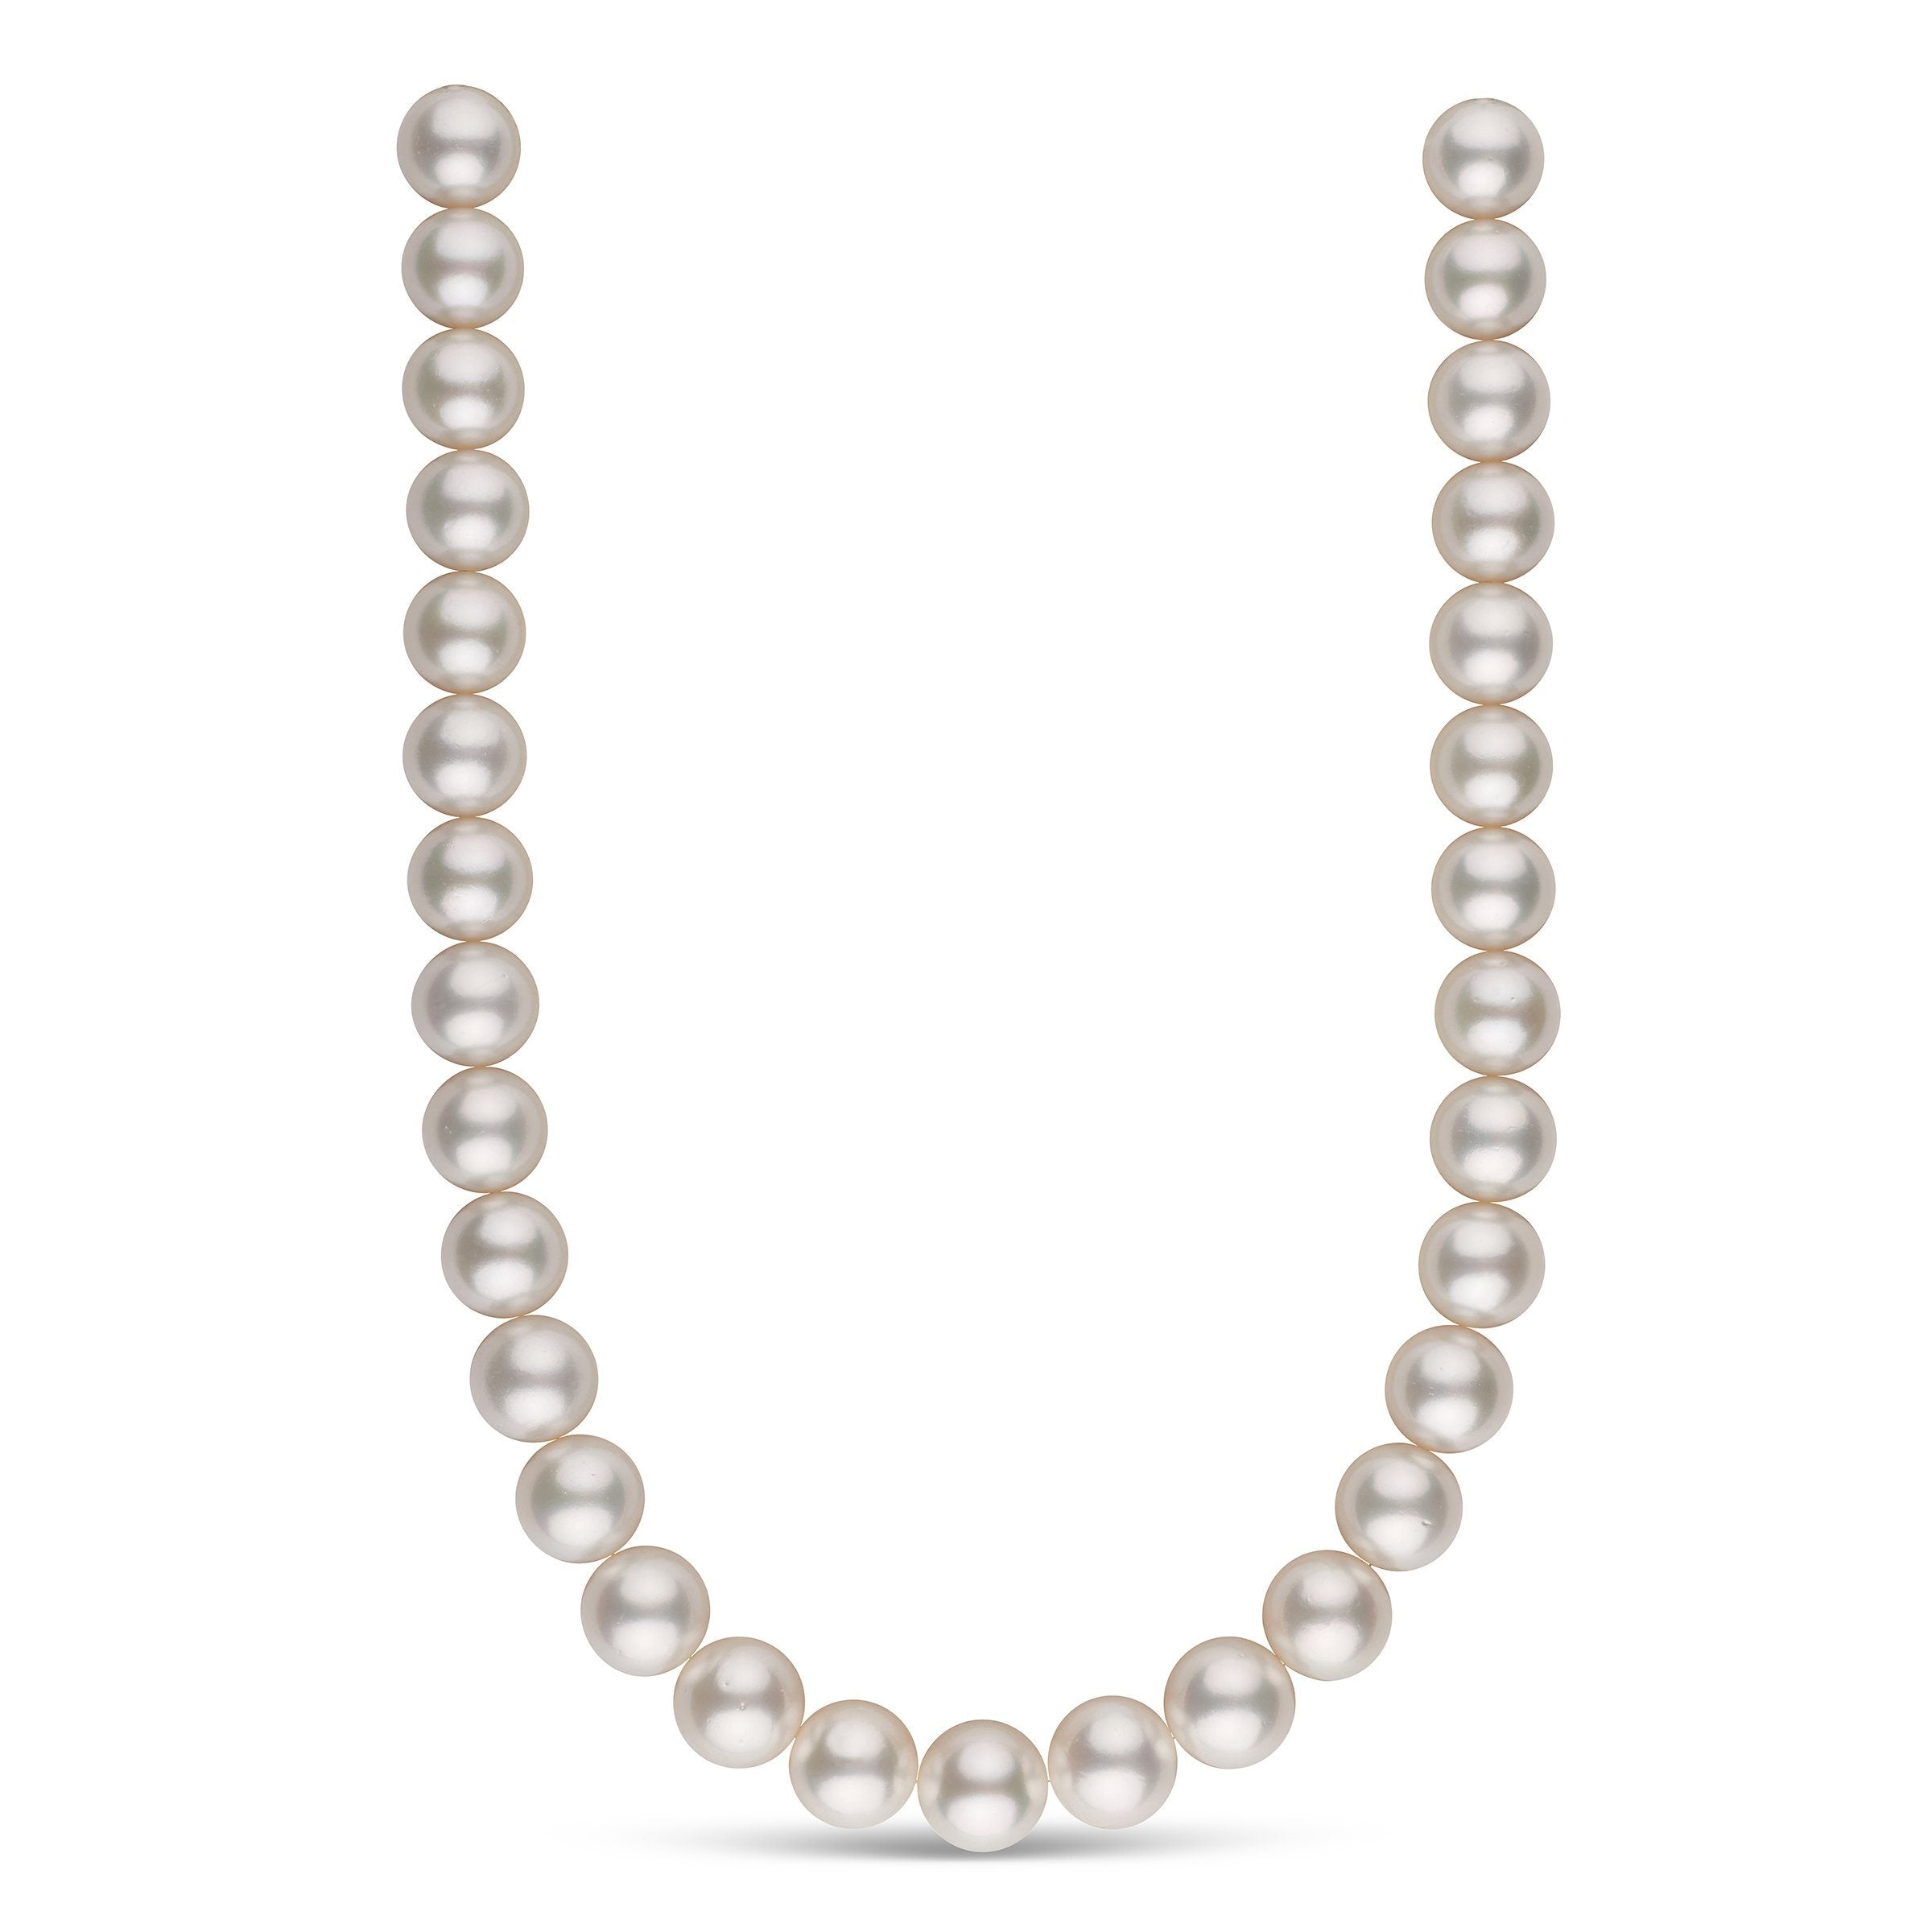 14.0-15.0 mm AA+/AAA White South Sea Round Pearl Necklace